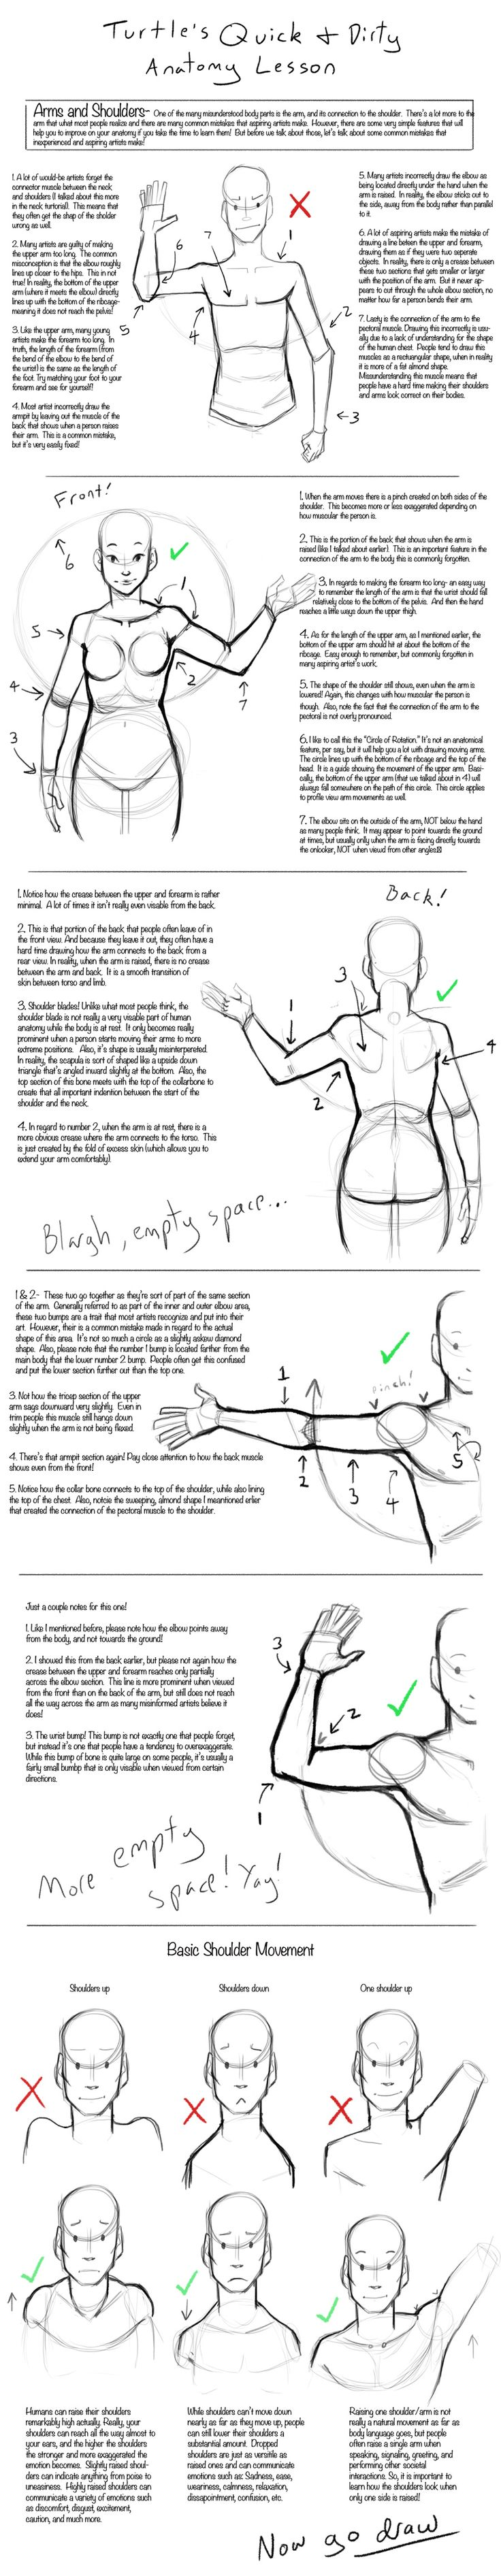 Q+D Anatomy Lessons- Arms and Shoulders by Turtle-Arts.deviantart.com on @deviantART